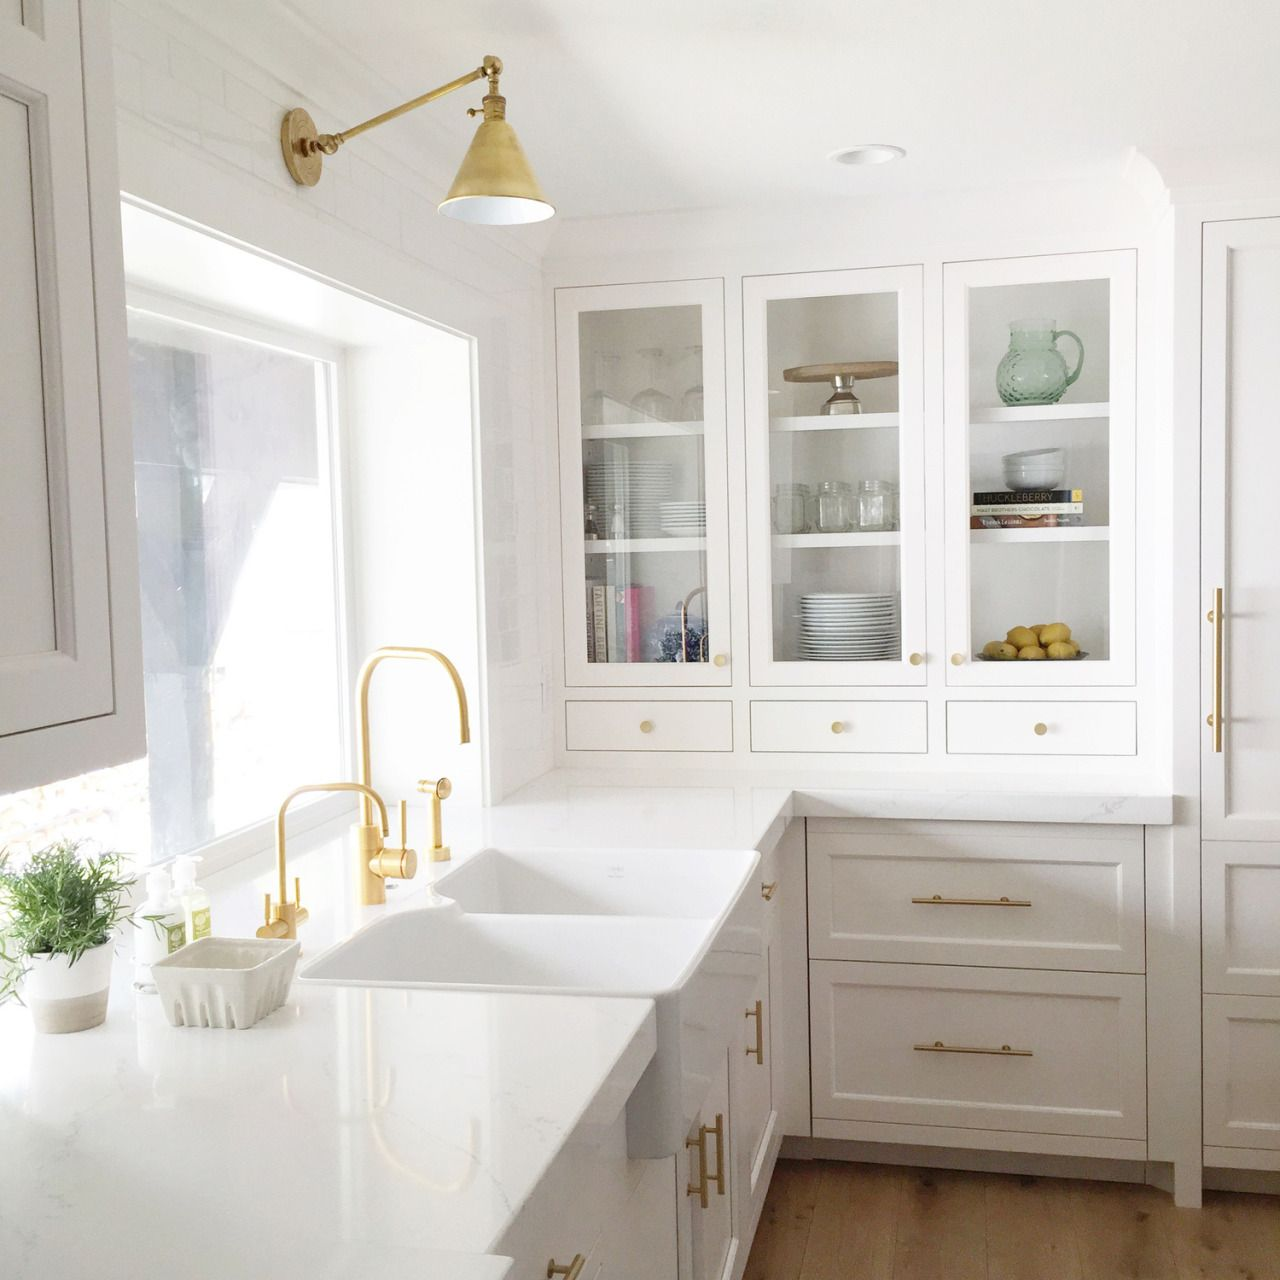 Kitchen With Gold Hardware